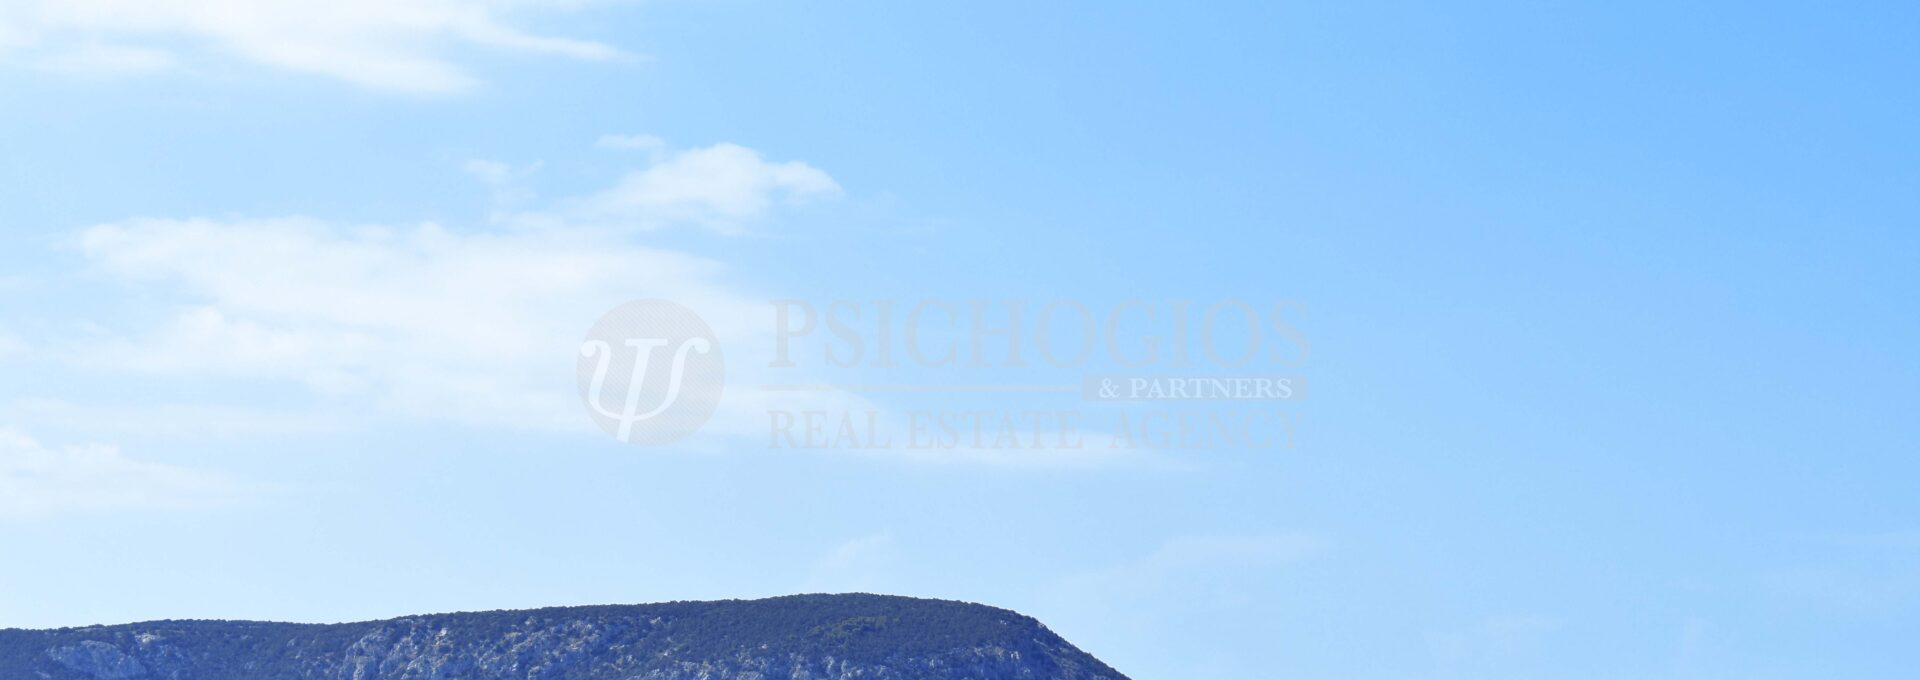 for_sale_house_223_square_meters_plot_730_square_meters_view_to_the_sea_ermioni_greece (20)